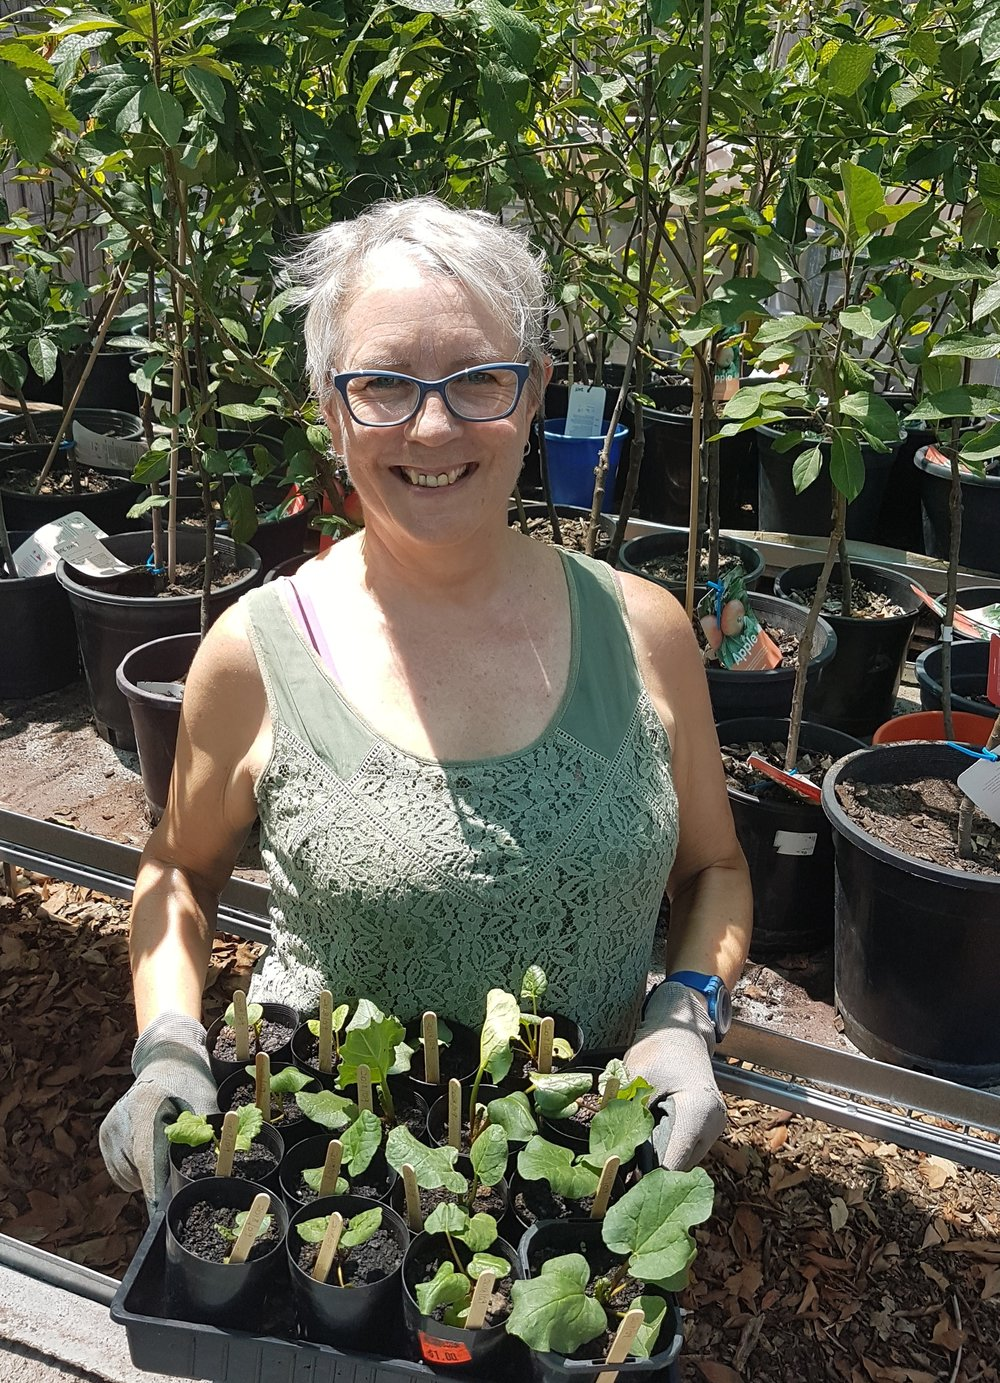 Christine - What is your Role?Seedling production- part of the Urban Food ProgramWhat are your highlights as a volunteer?Watching the growth of seeds into seedlings and then as plants in the garden. Also the camaraderie and company of the other volunteersWhat's your advice for someone who is considering volunteer work?Be clear about your capacity as a volunteer – how much and how often you can manage. Try to get a clear understanding of what will be expected of you before you start.